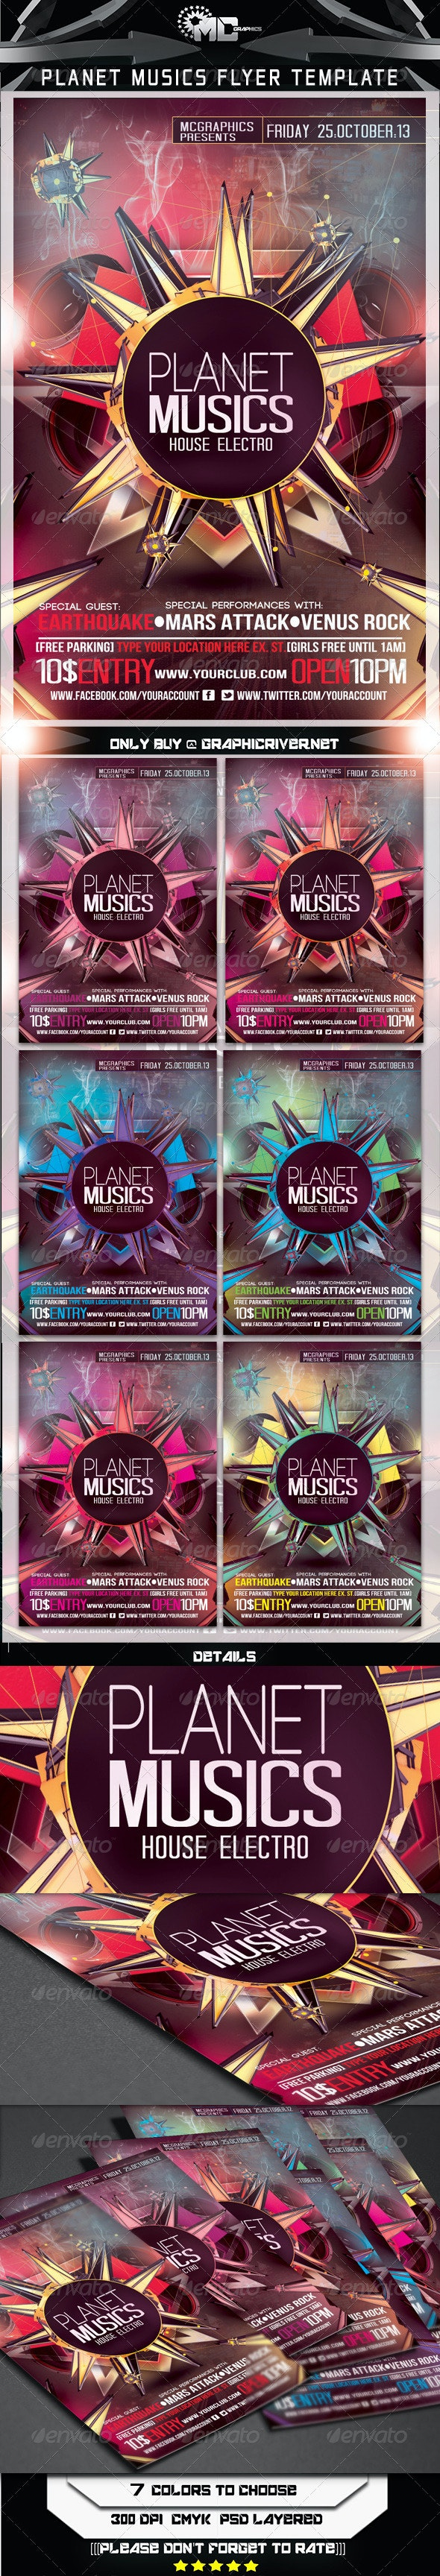 Planet Music Flyer Template - Clubs & Parties Events